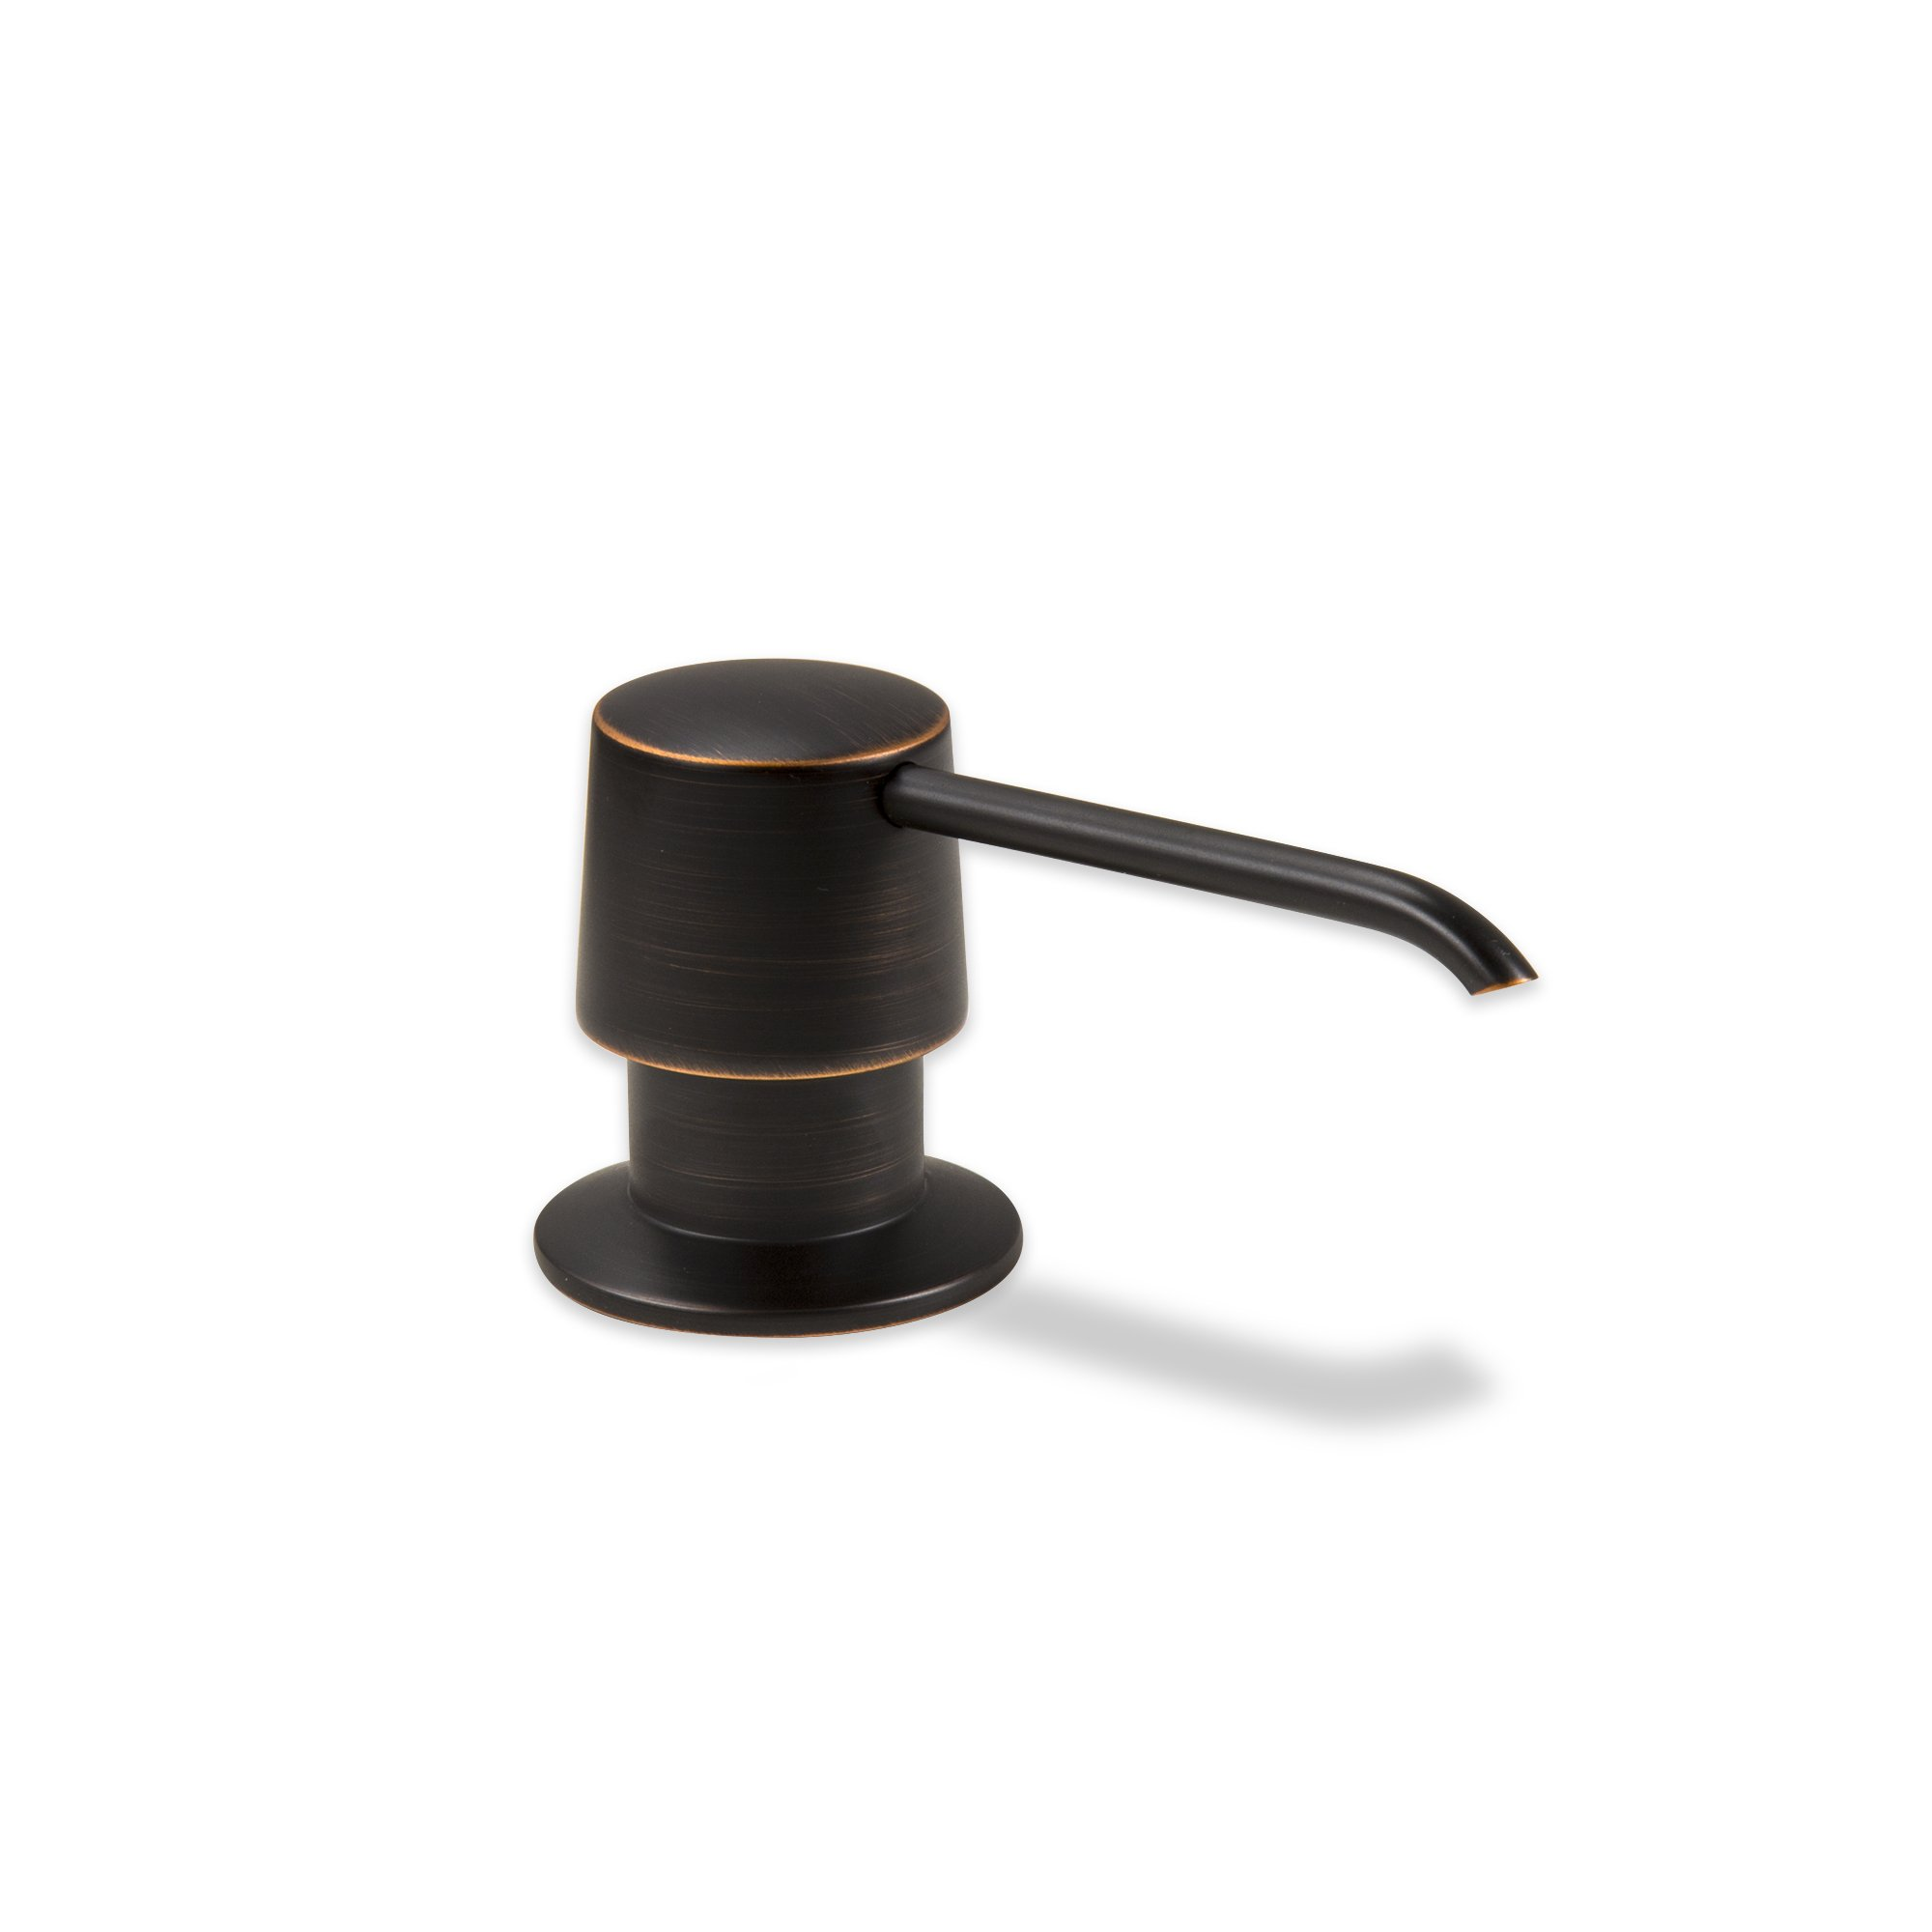 Decor Star SD-004-TO Kitchen Bathroom Sink Deck Mount Soap or Lotion Pump Dispenser Oil Rubbed Bronze by Décor Star